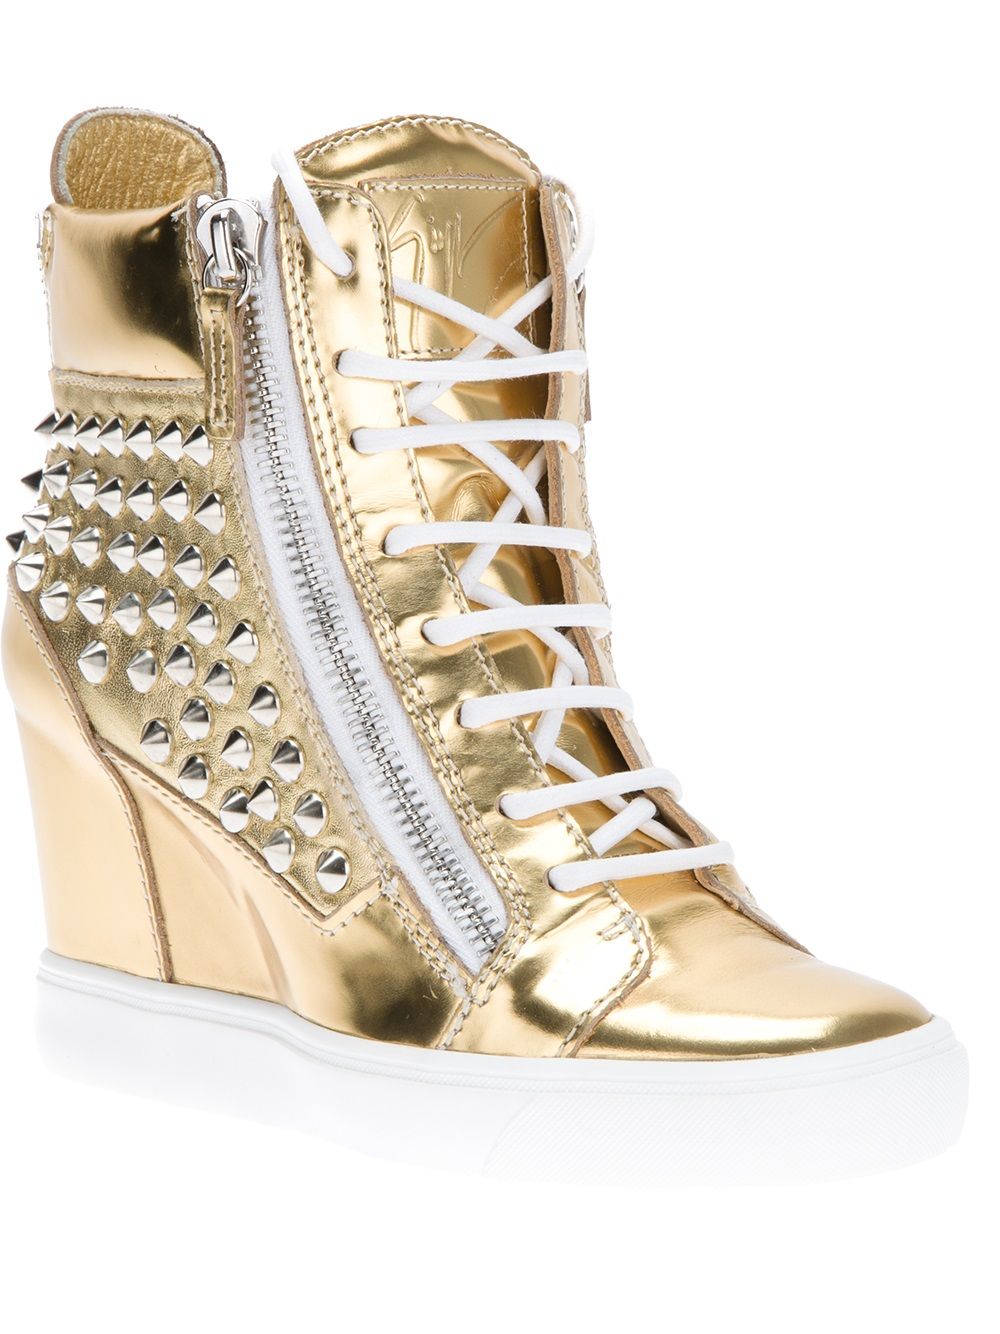 Lyst - Giuseppe Zanotti Wedge Hi-Top Sneakers in Metallic 3eeb1f564